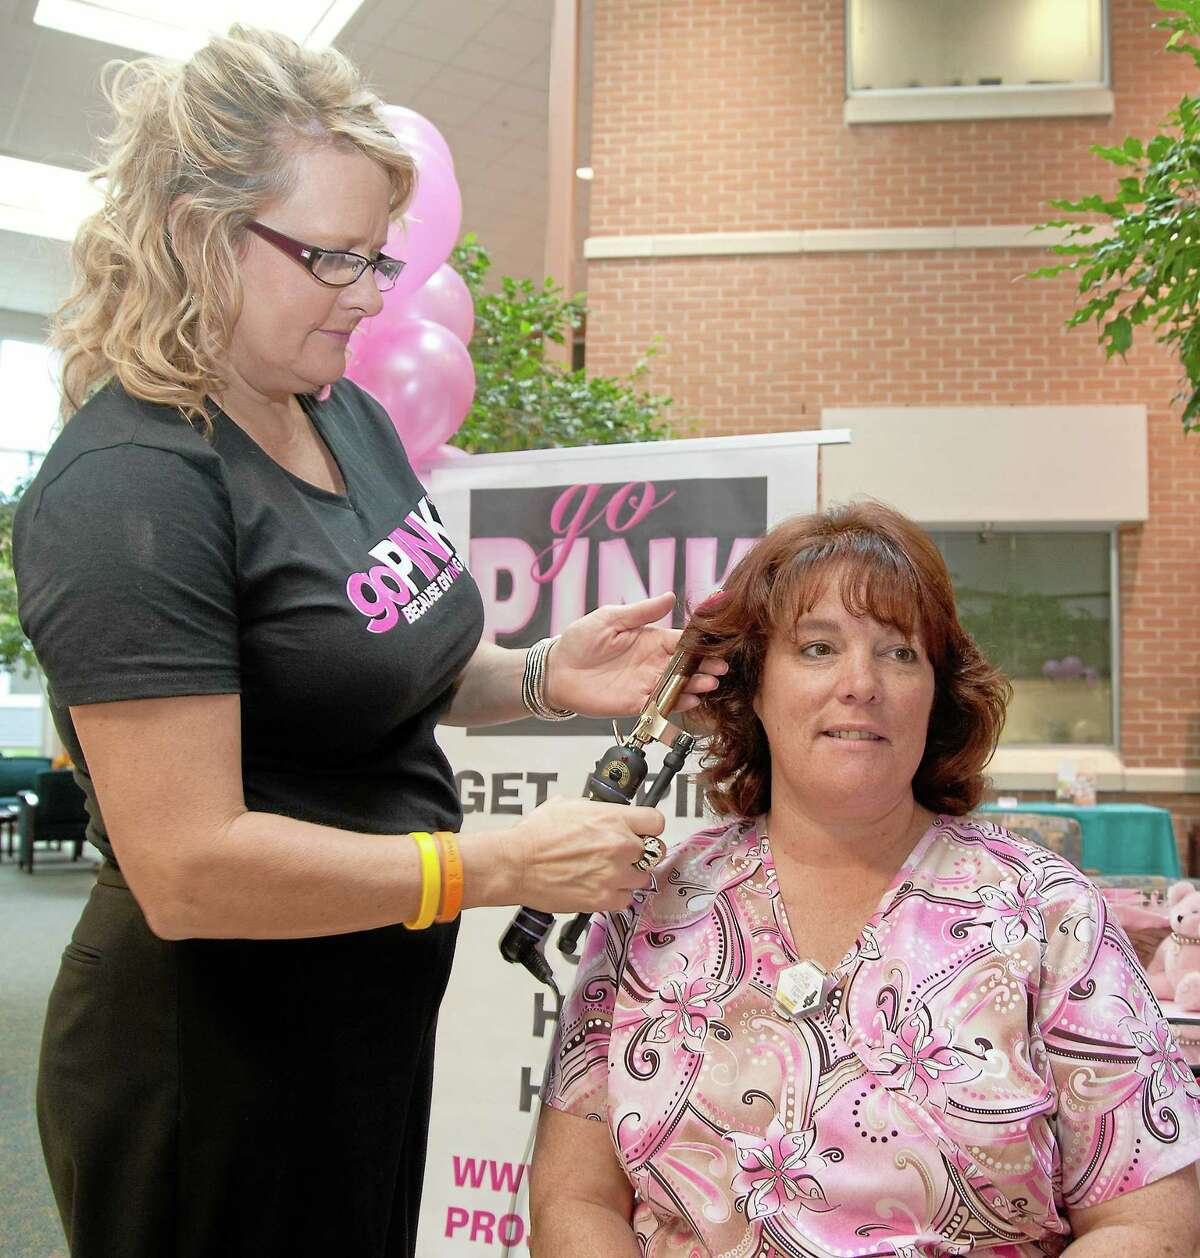 Georgi Marino, left, co-owner of EG Salon, puts the finishing touches on a pink hair extension for Middlesex Hospital Outpatient Center mammography technologist, Laura Daniels, in this archive photograph.